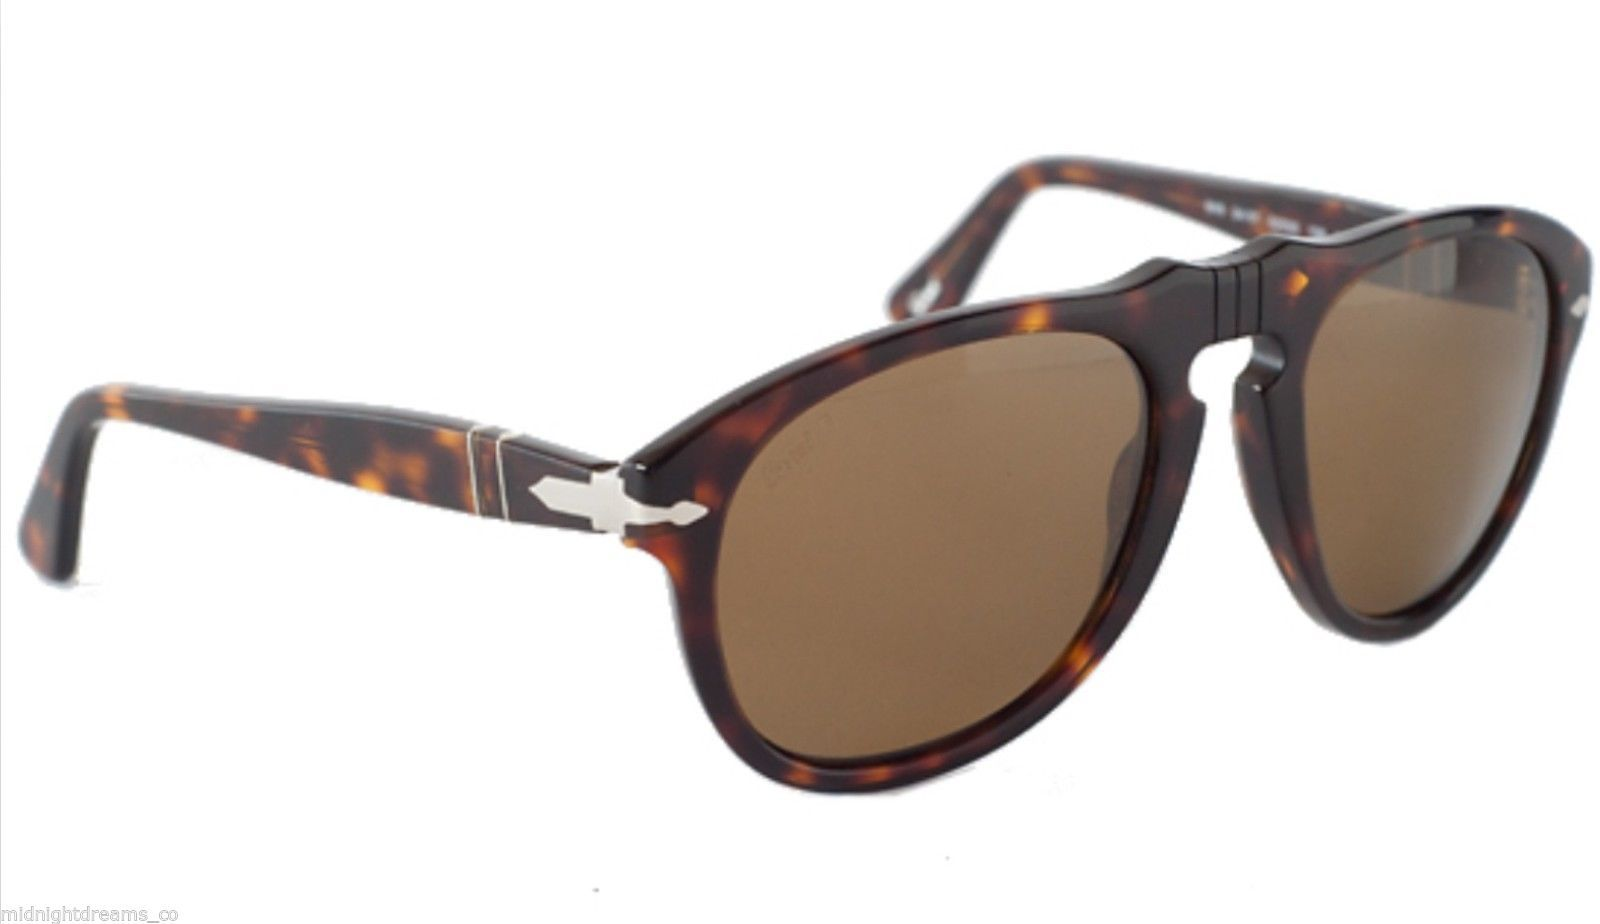 8208c6ba0c2 New Polarized PERSOL Sunglasses PO 649 24 57 and 36 similar items. S l1600